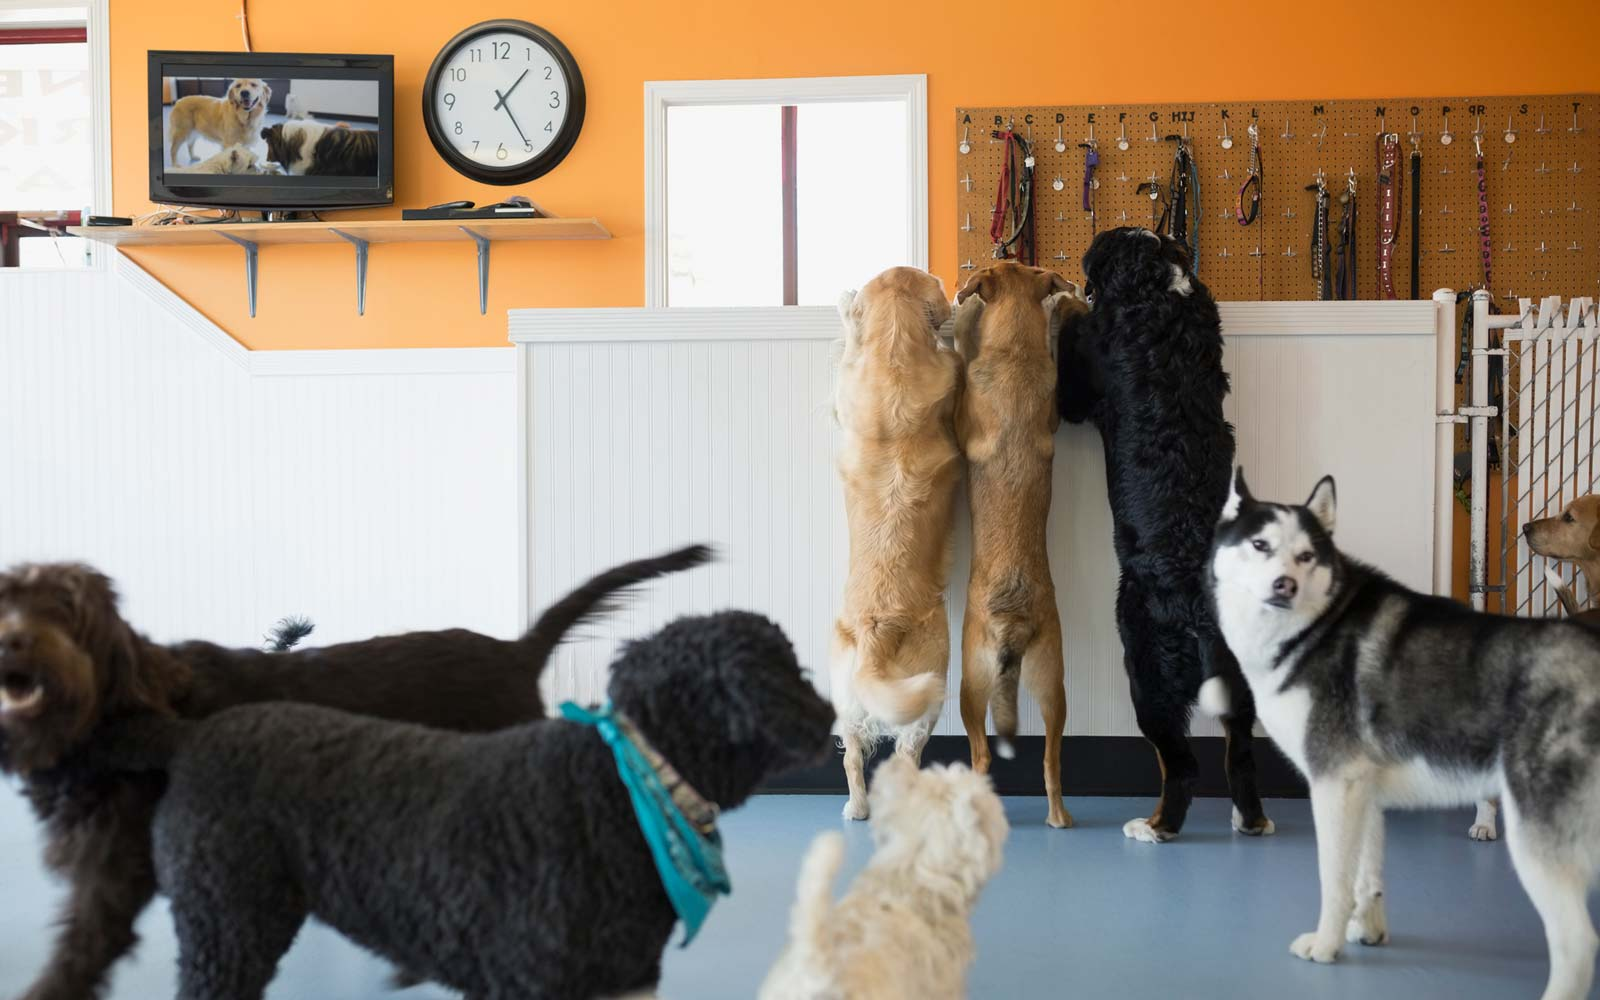 Dog Runs Away From Home, Travels Over a Mile to Hang Out With His Friends at Doggy Daycare